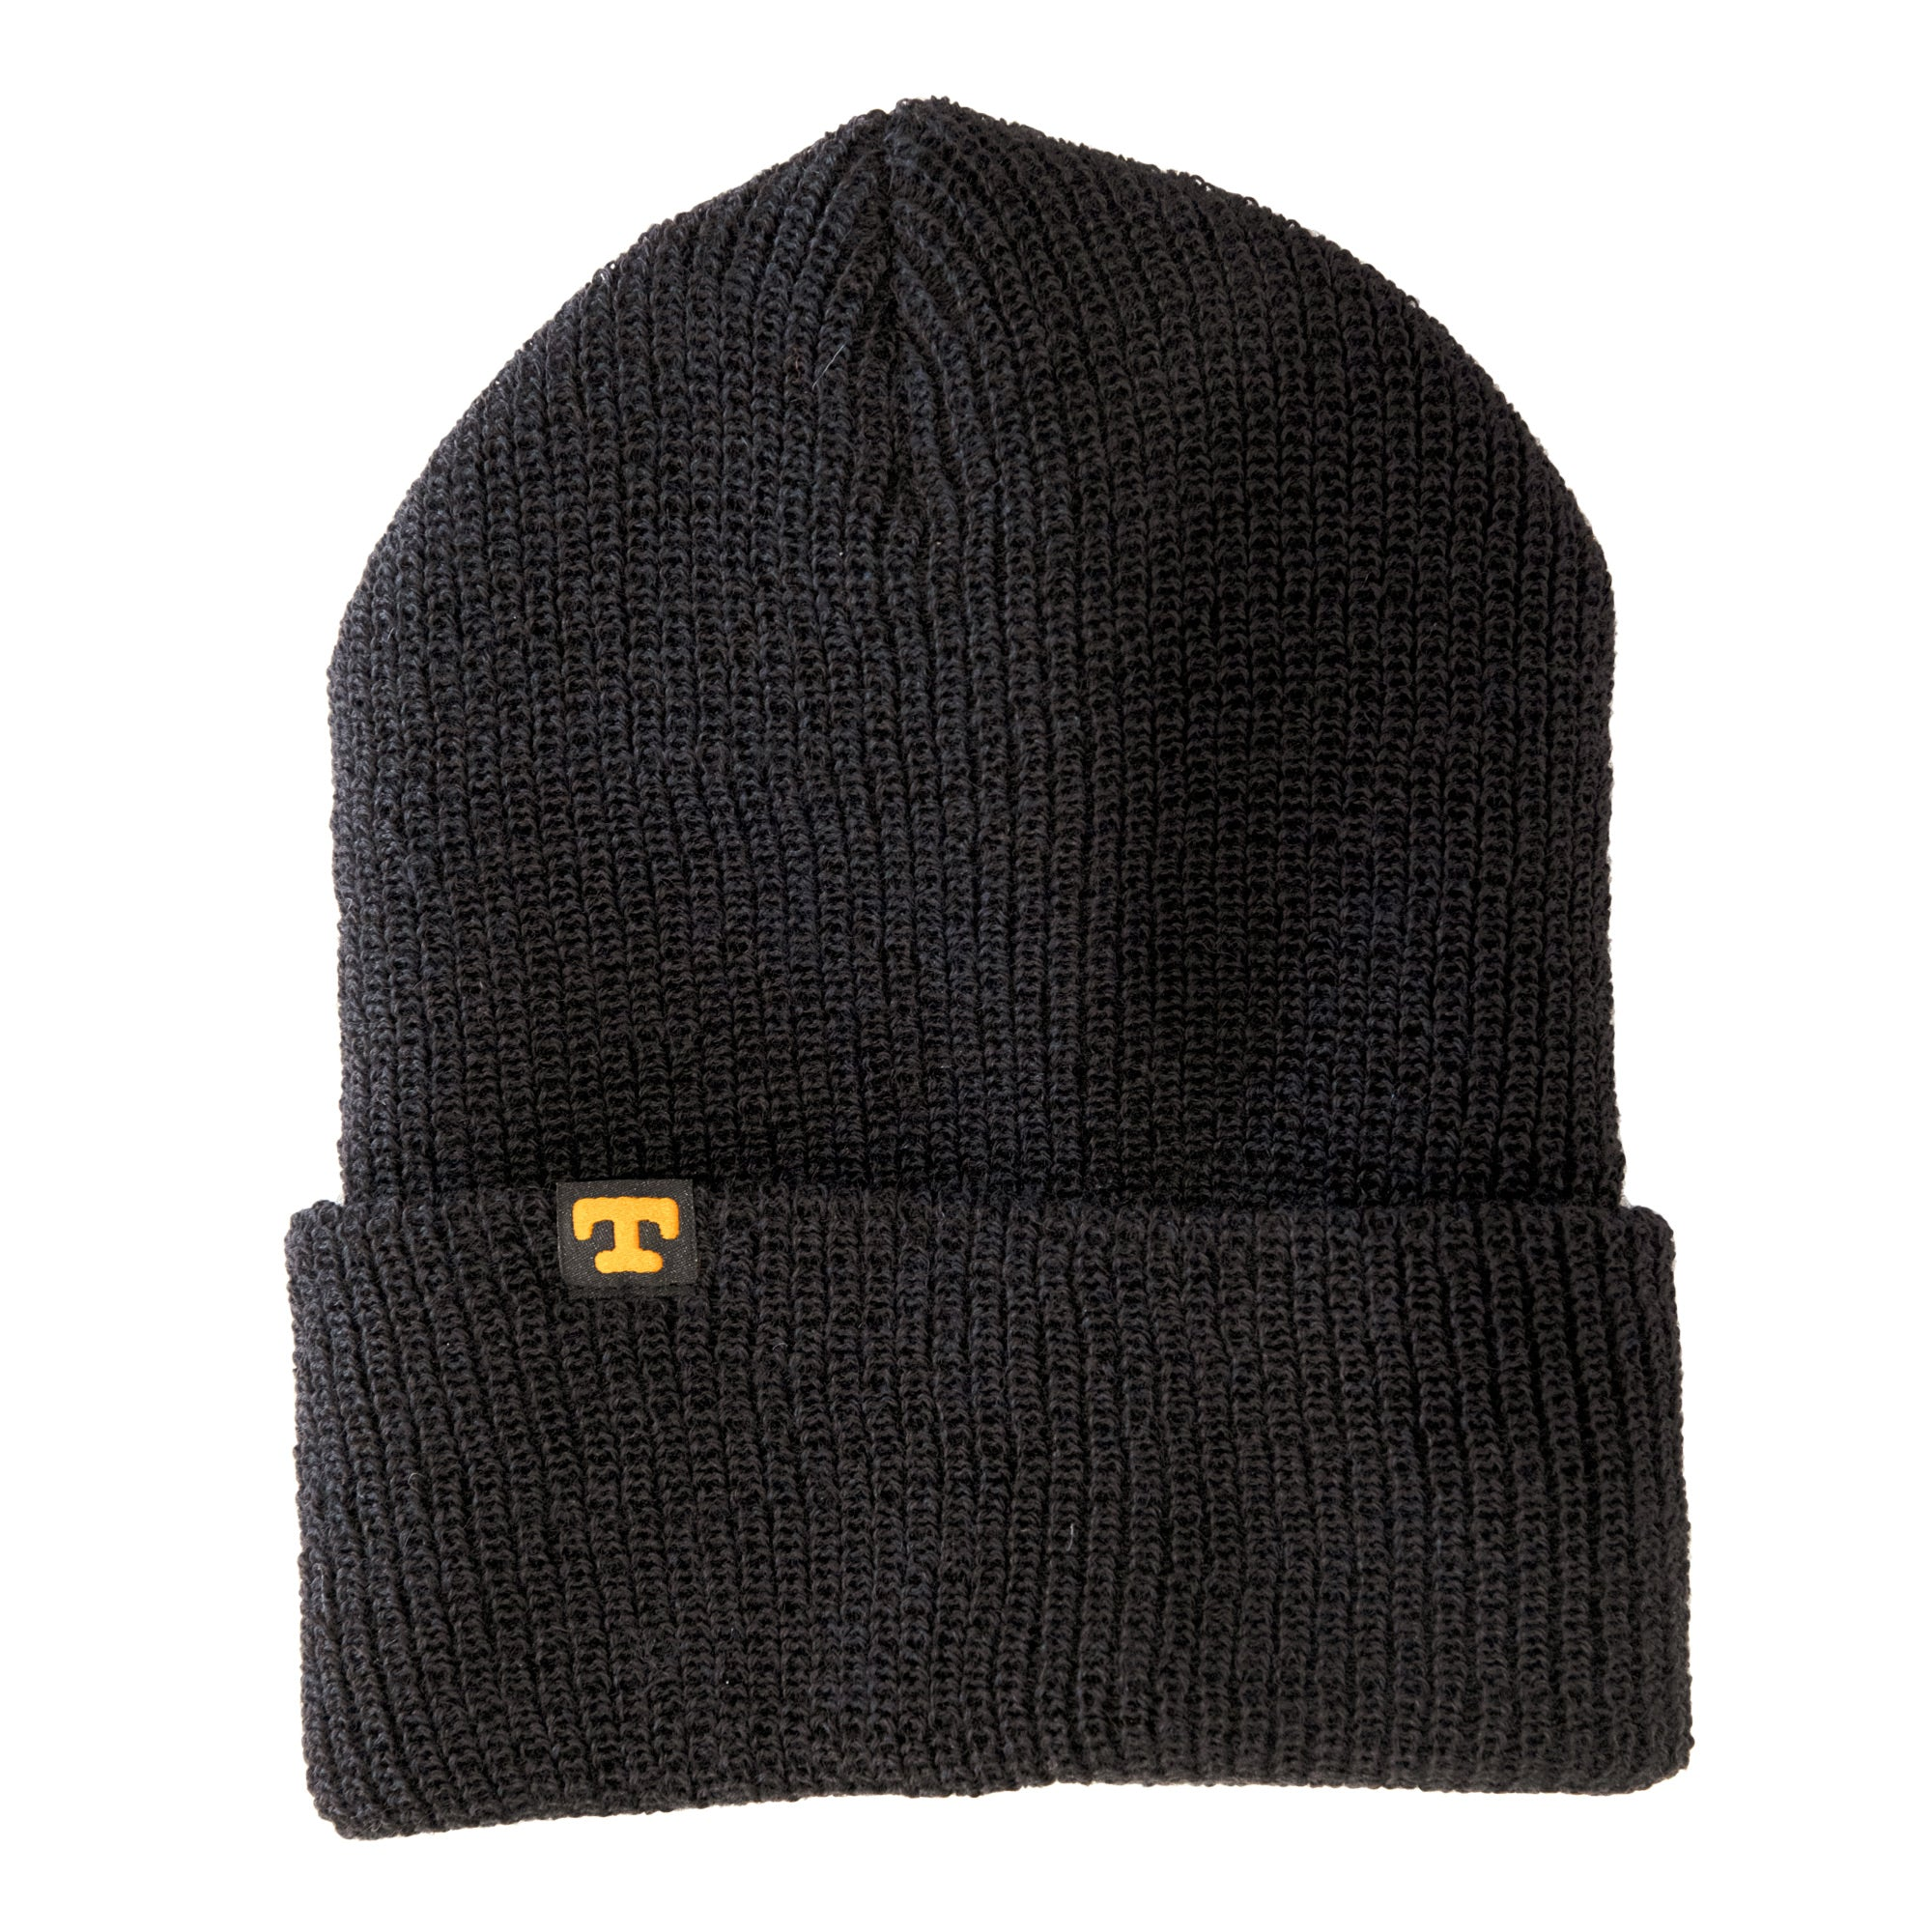 Tellason wool watch cap- Black